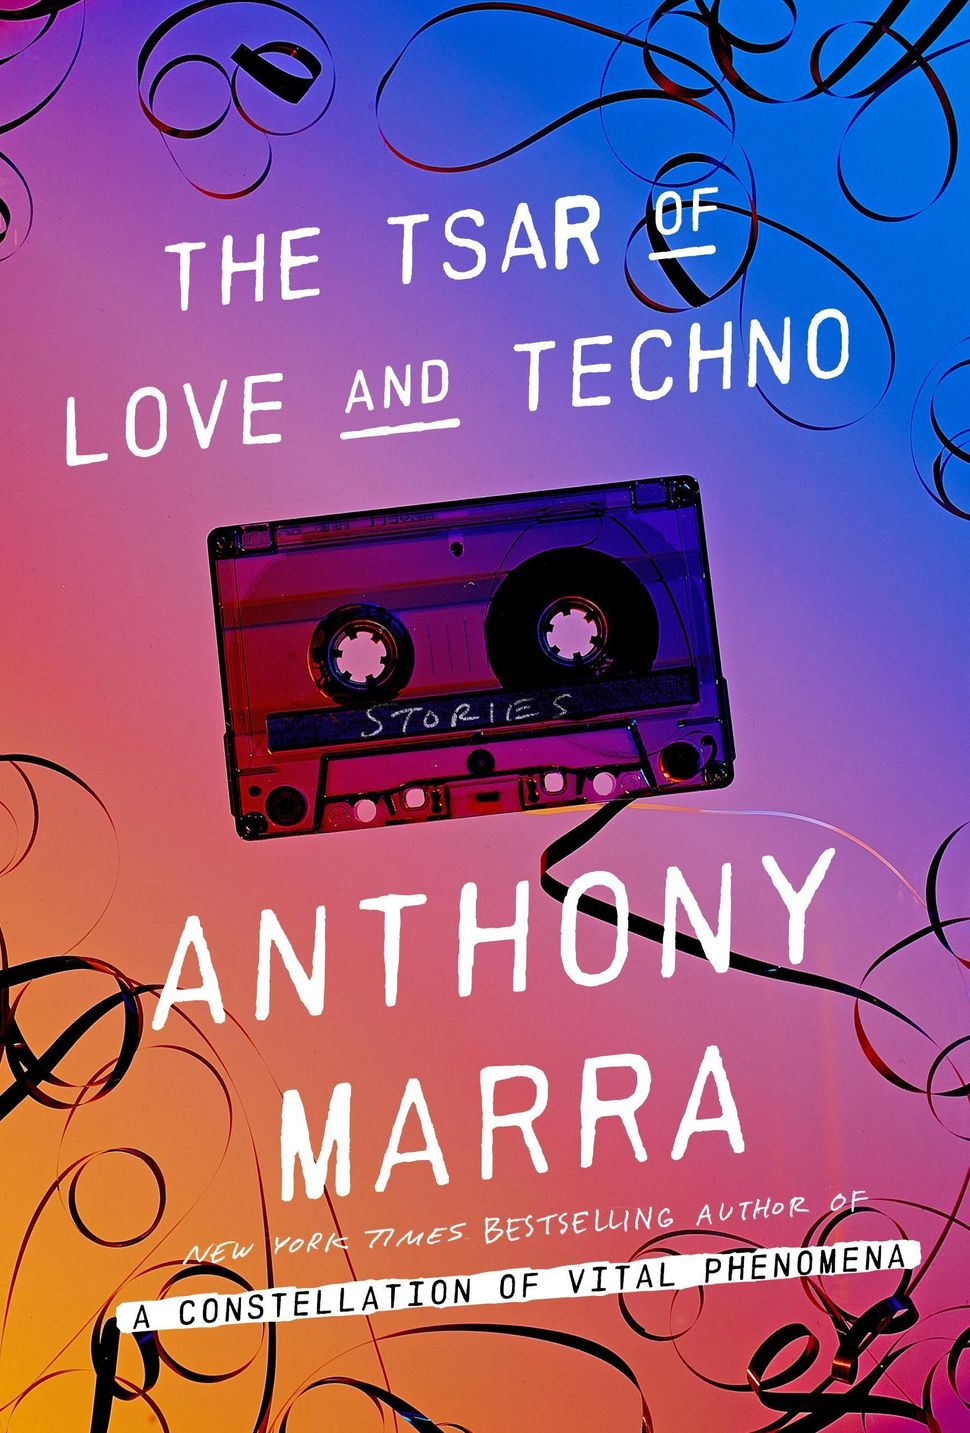 Image result for tsar of love and techno cover